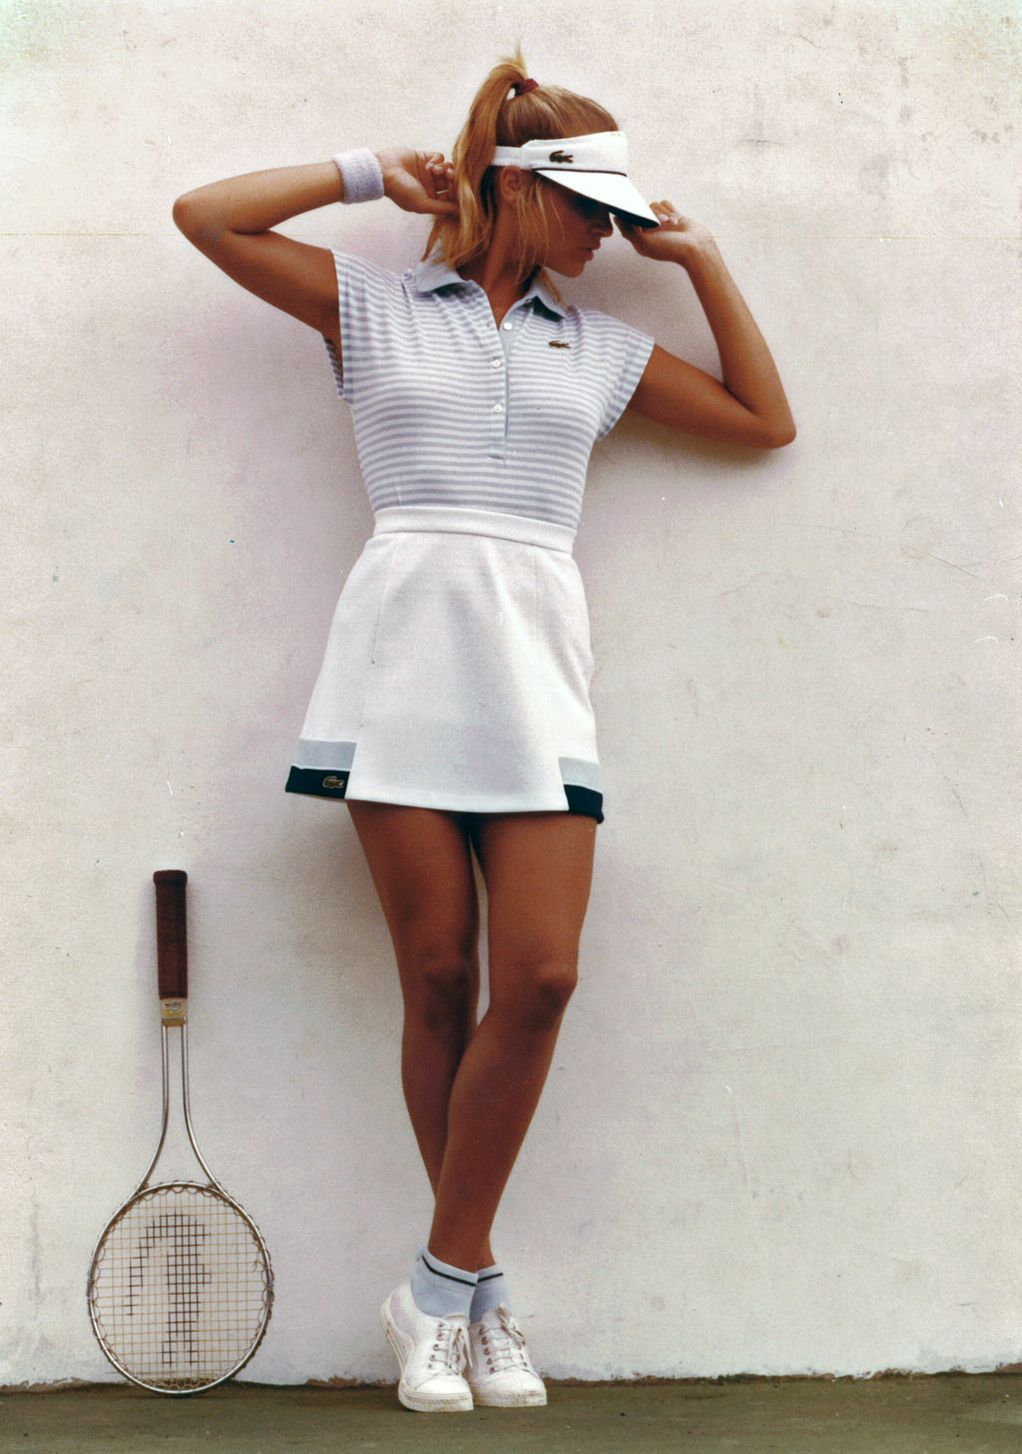 From The Lacoste S A Archives C All Rights Ropa De Tenis Ropa Tenis Trajes Con Tenis